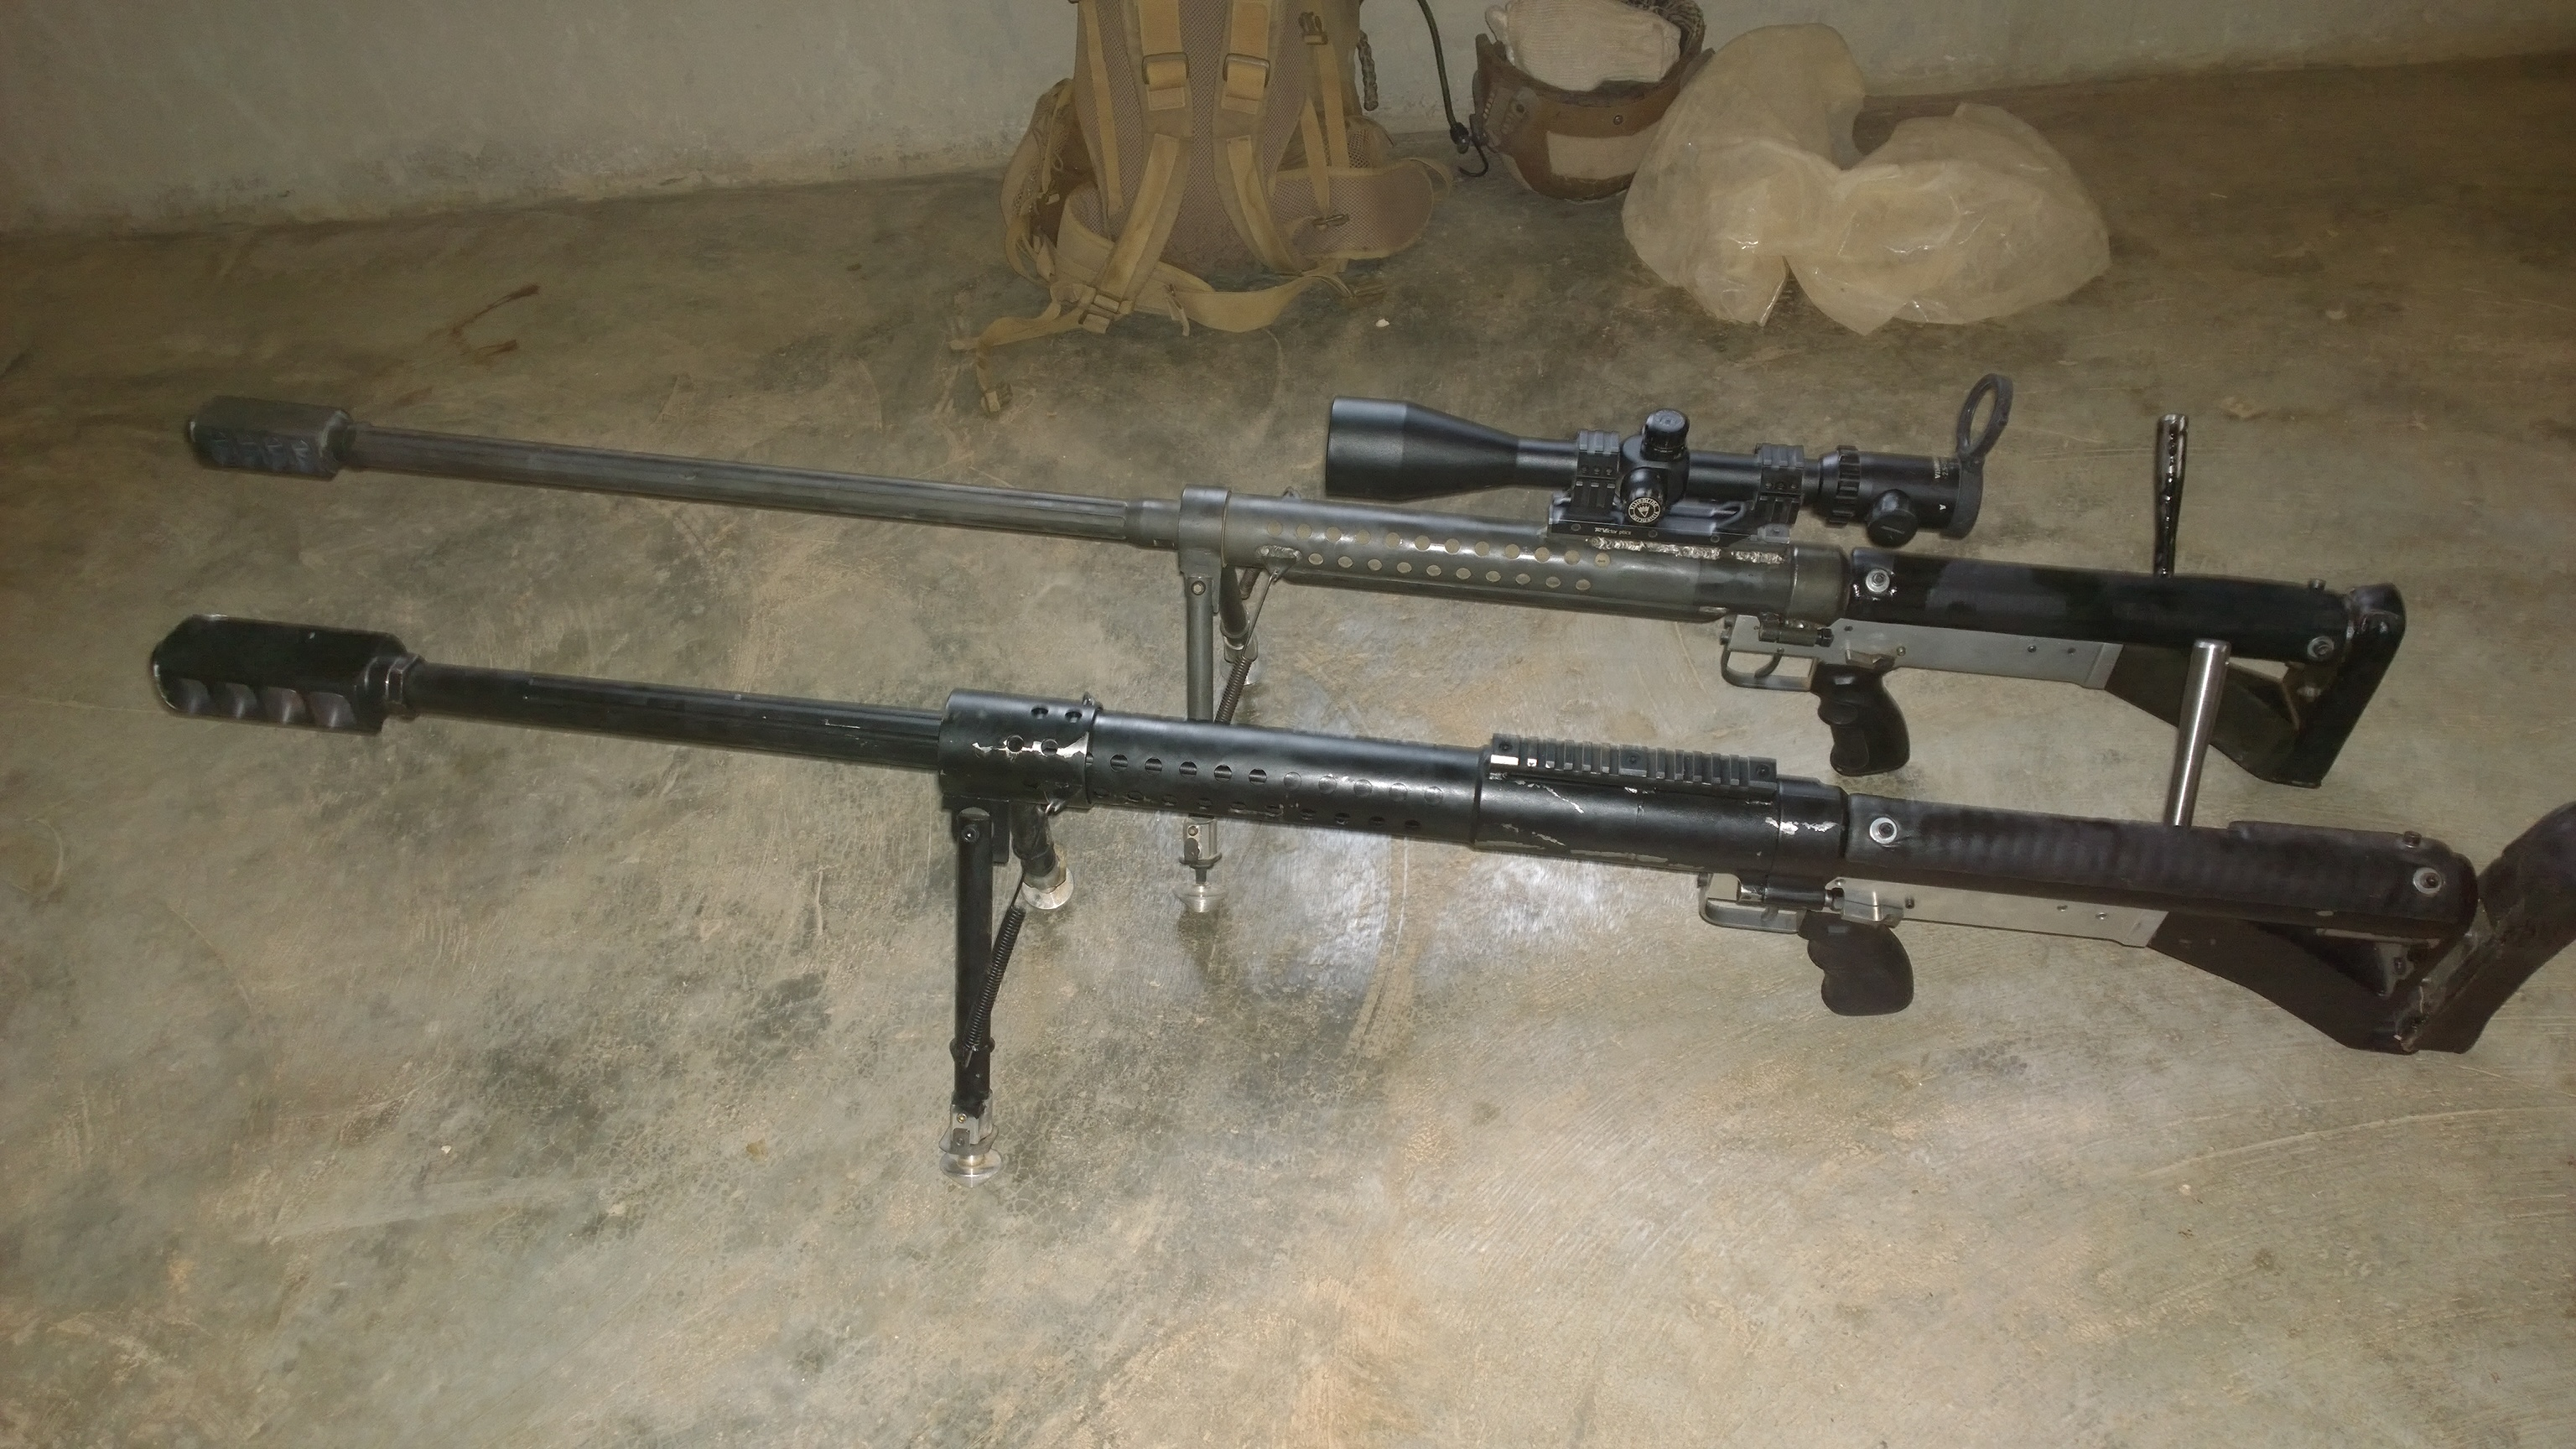 Anti Materiel Rifle craft-produced anti-materiel rifles in service with kurdish